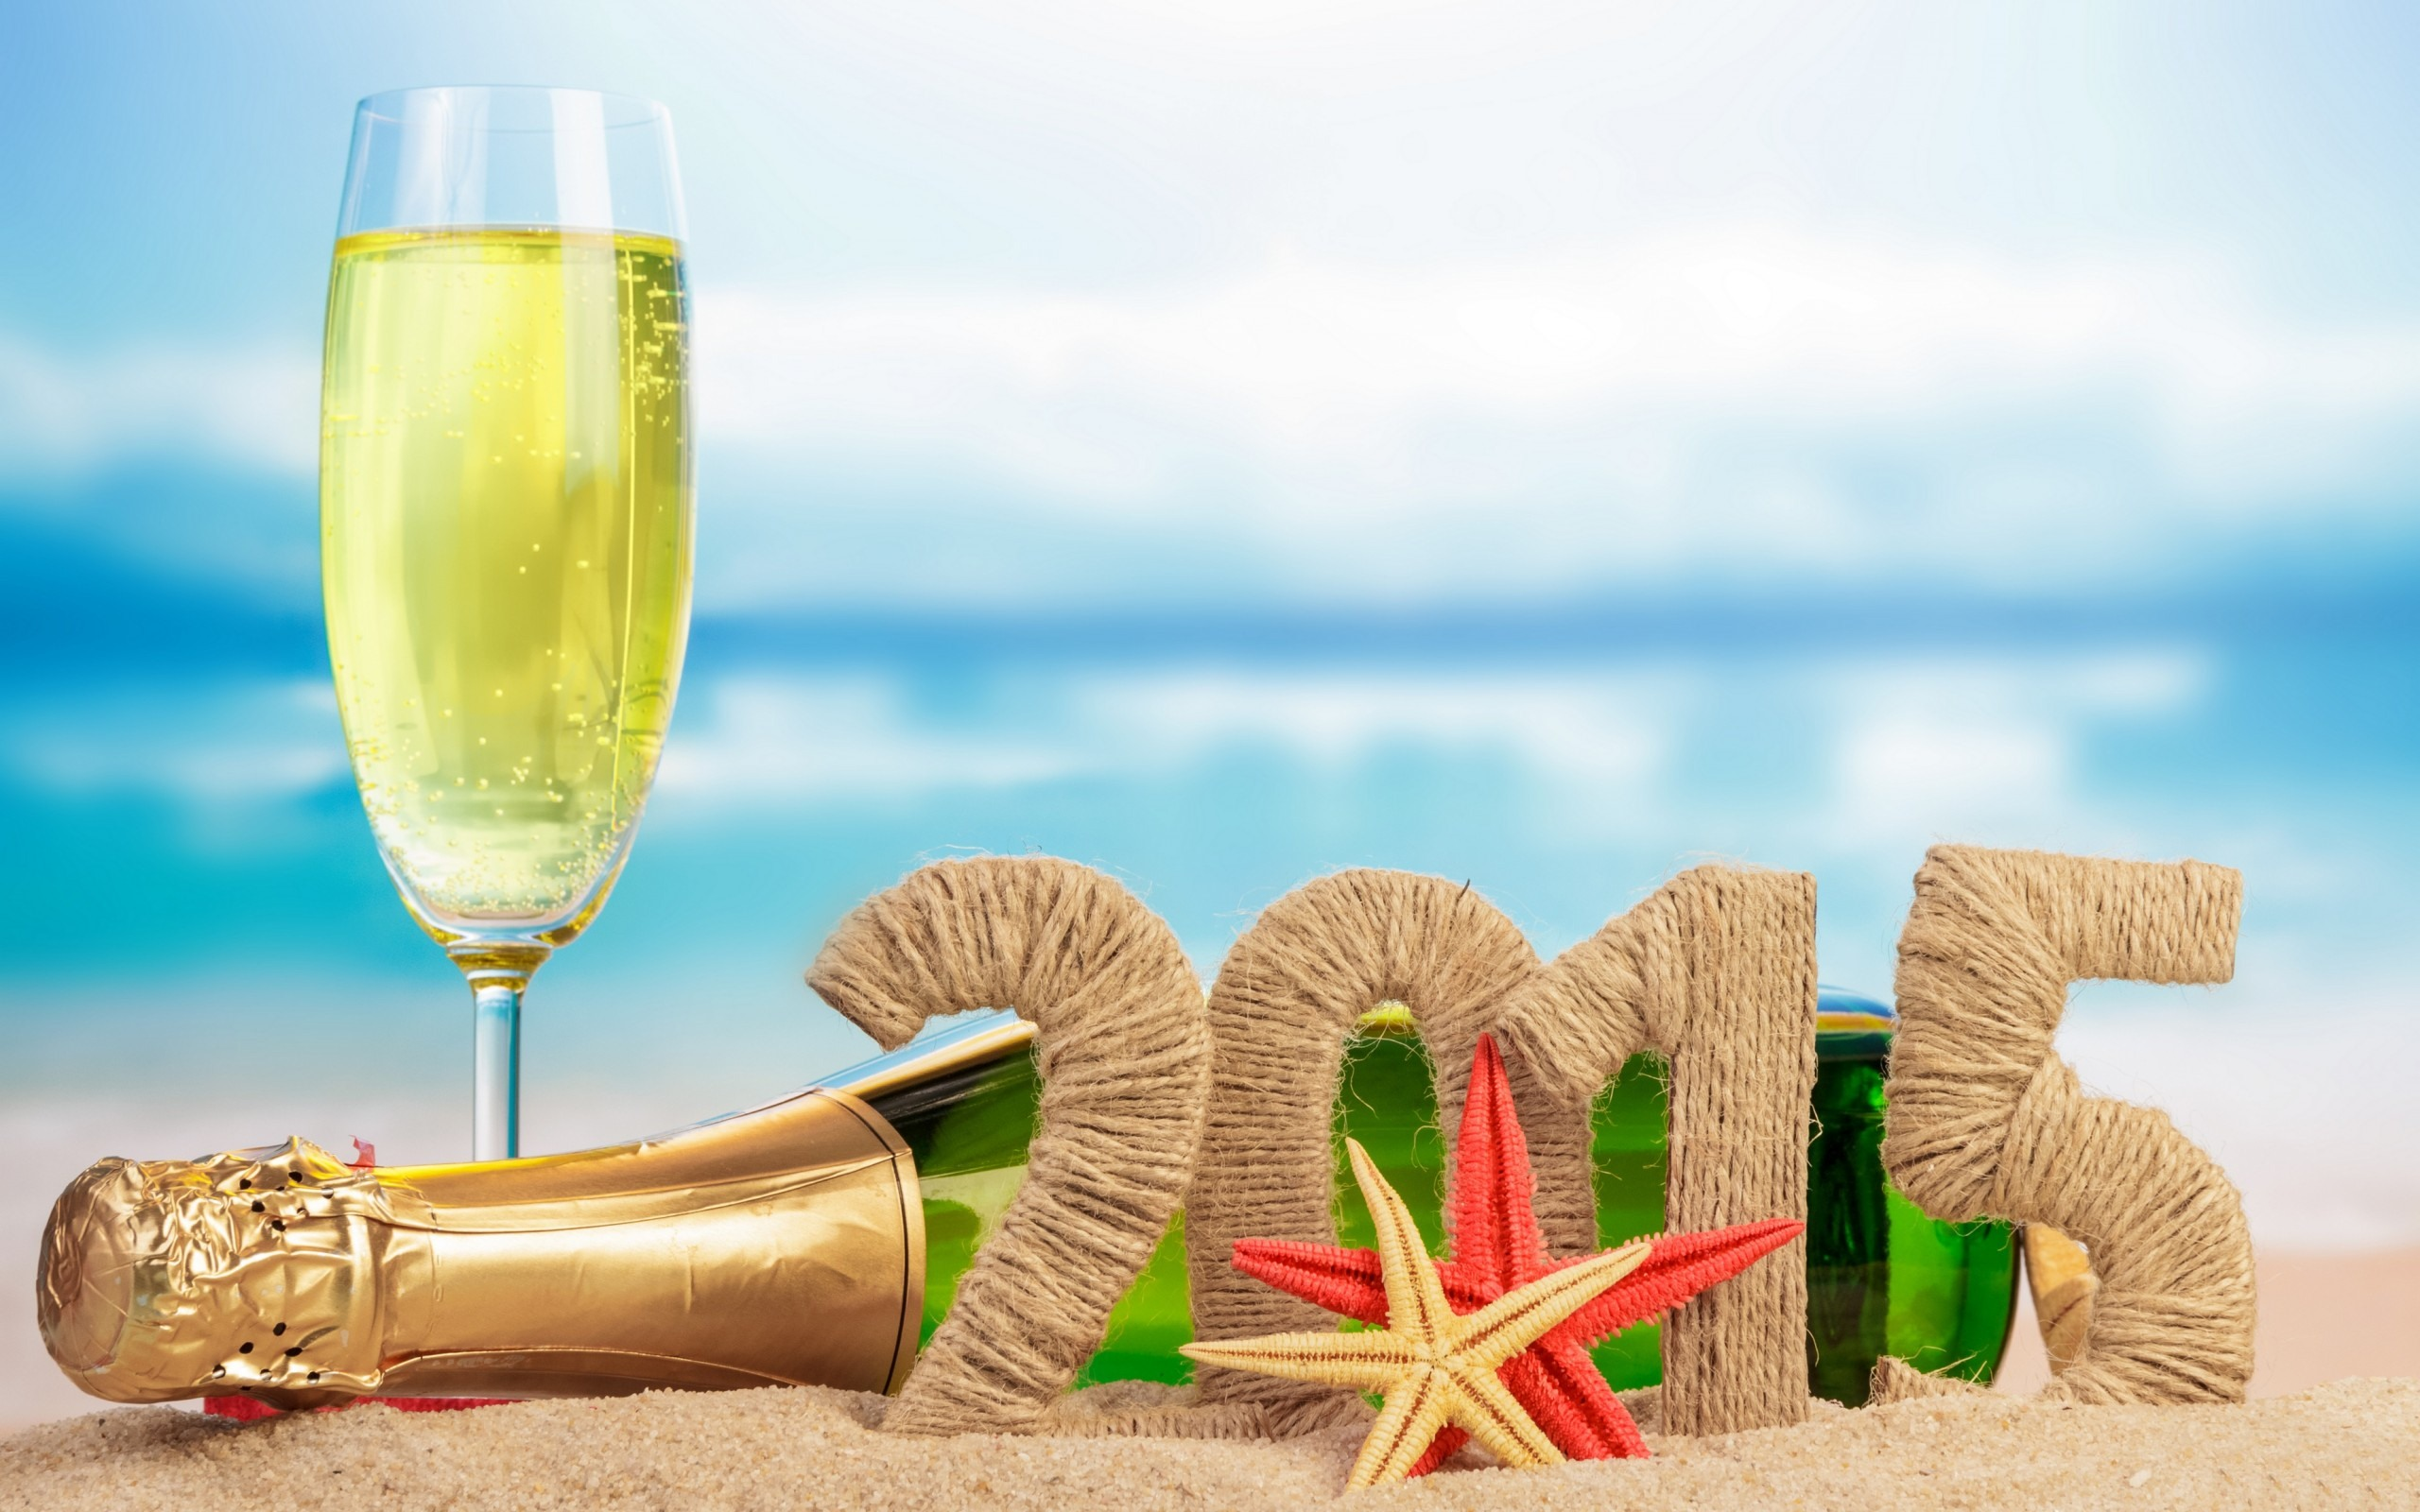 Happy New Year Beach 2015 Wallpaper Champagne